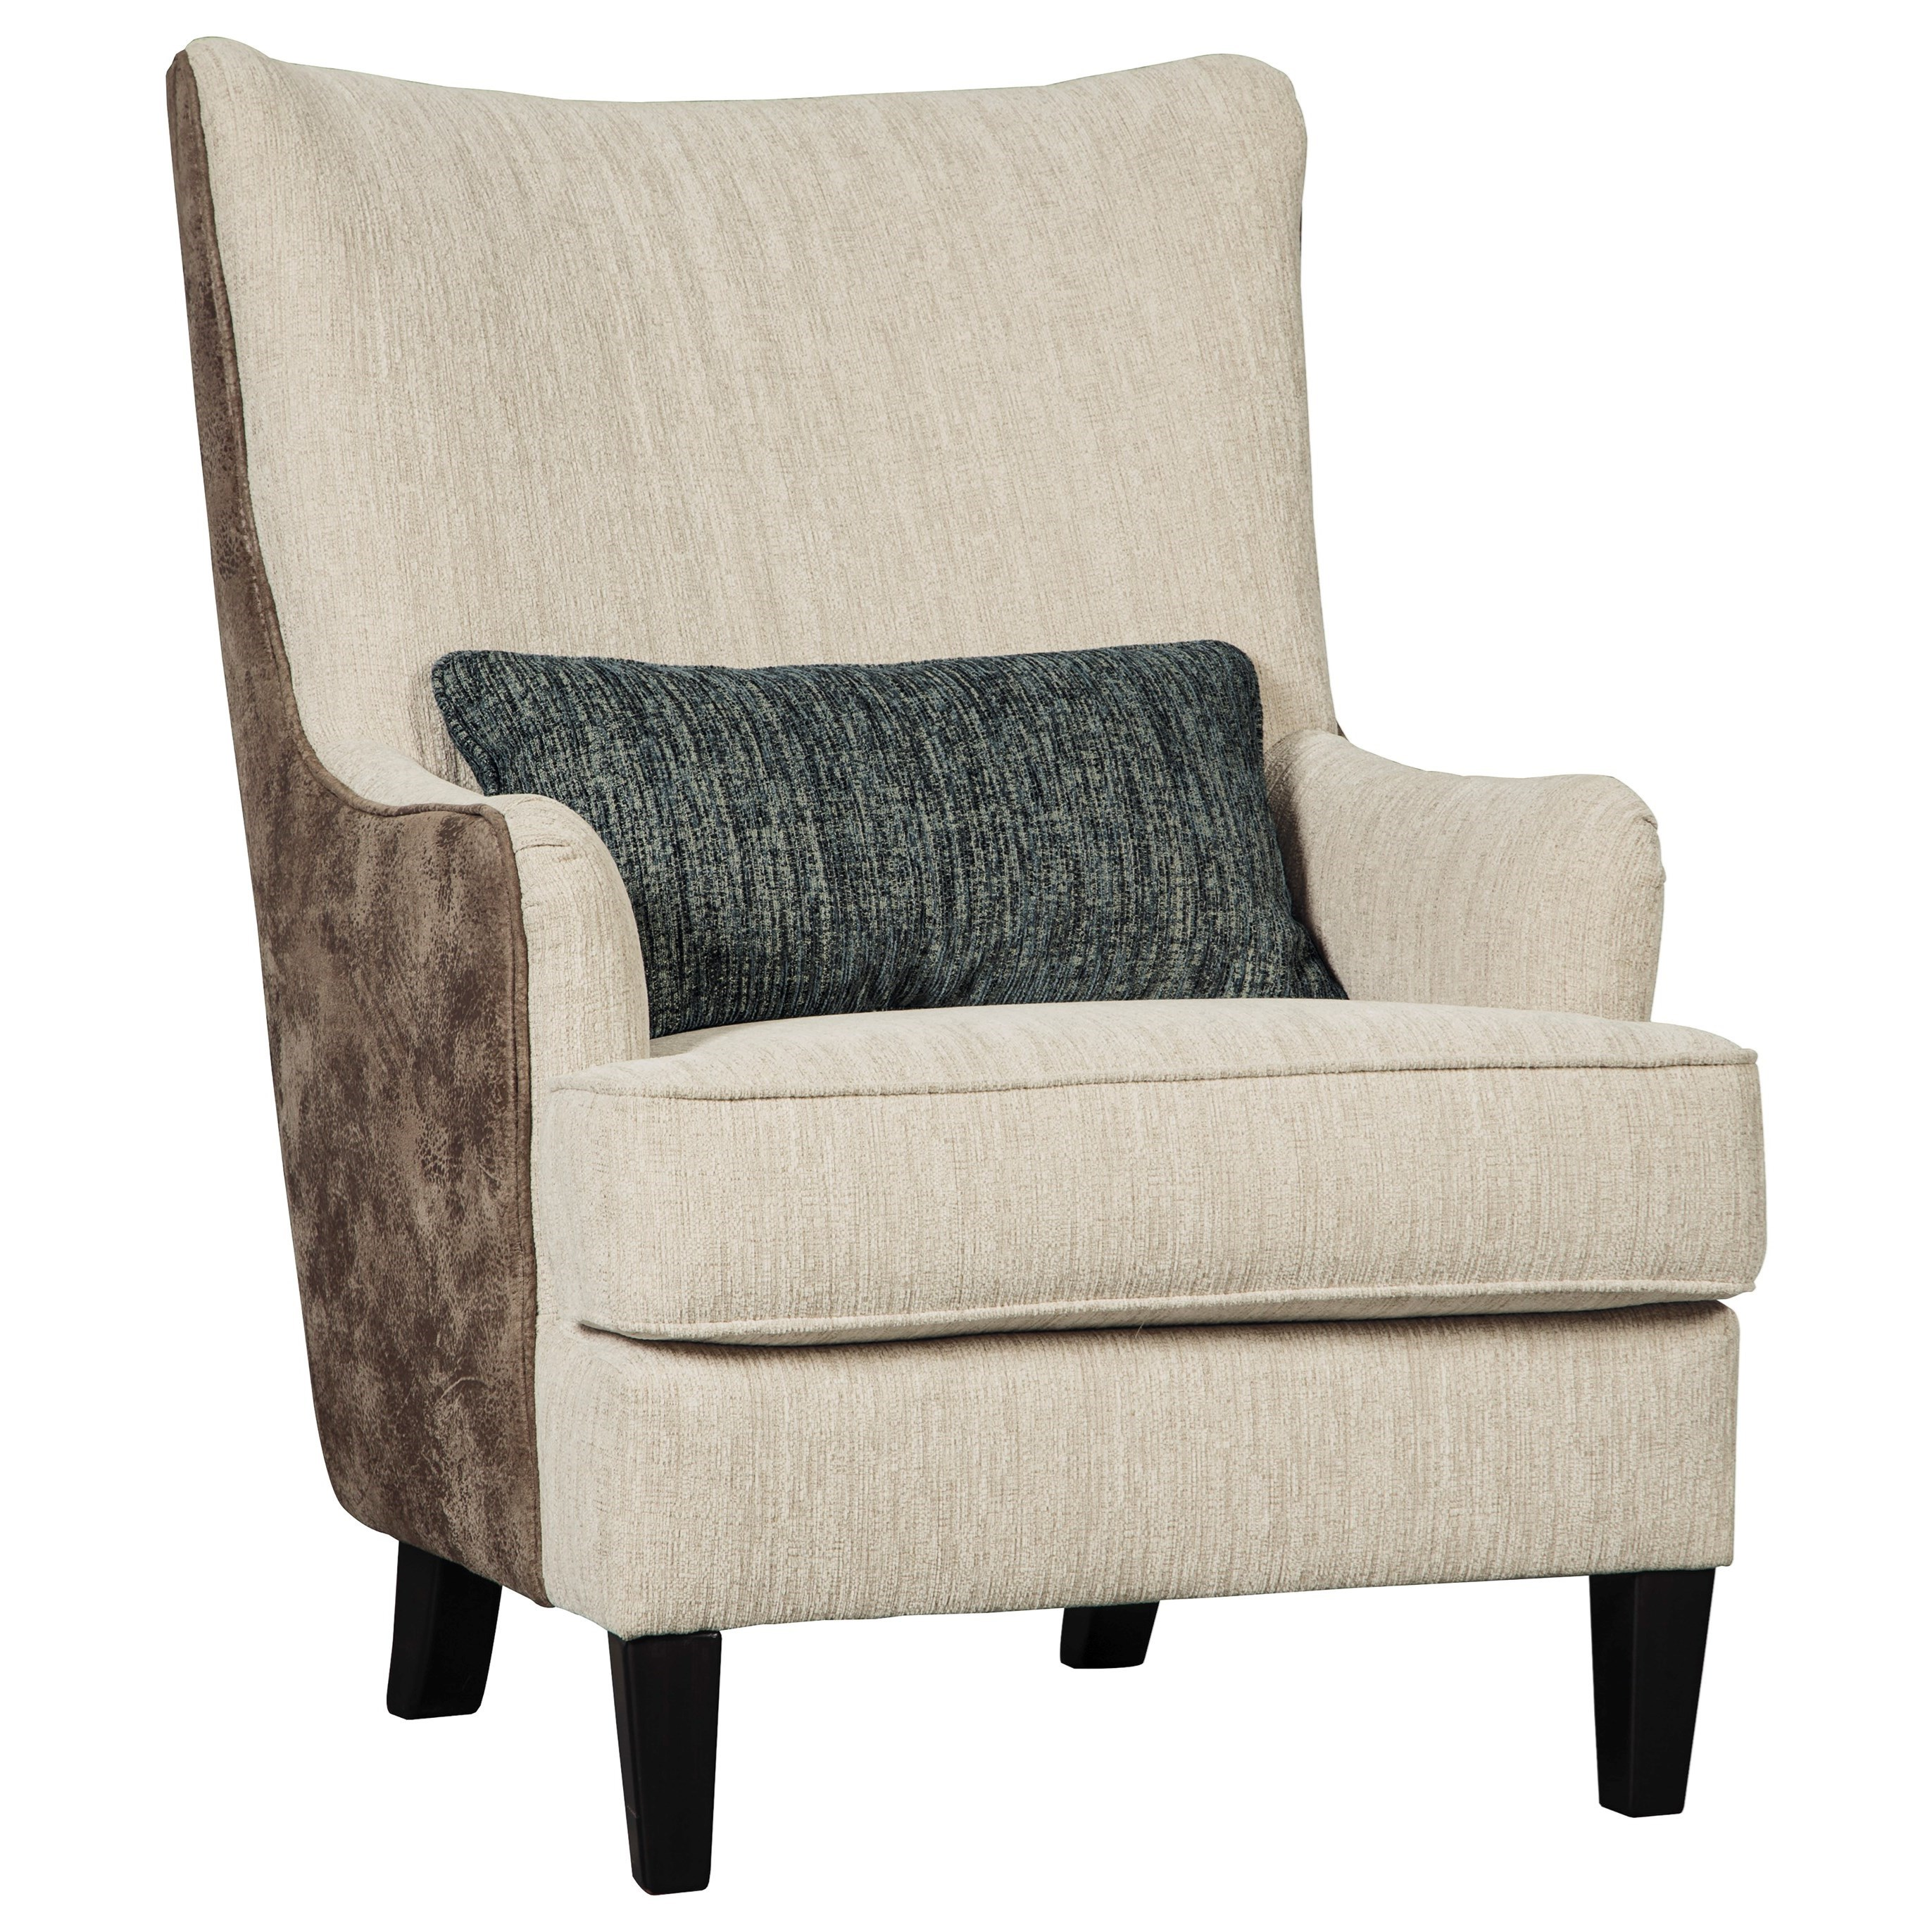 Benchcraft Silsbee Accent Chair - Item Number: 5540221